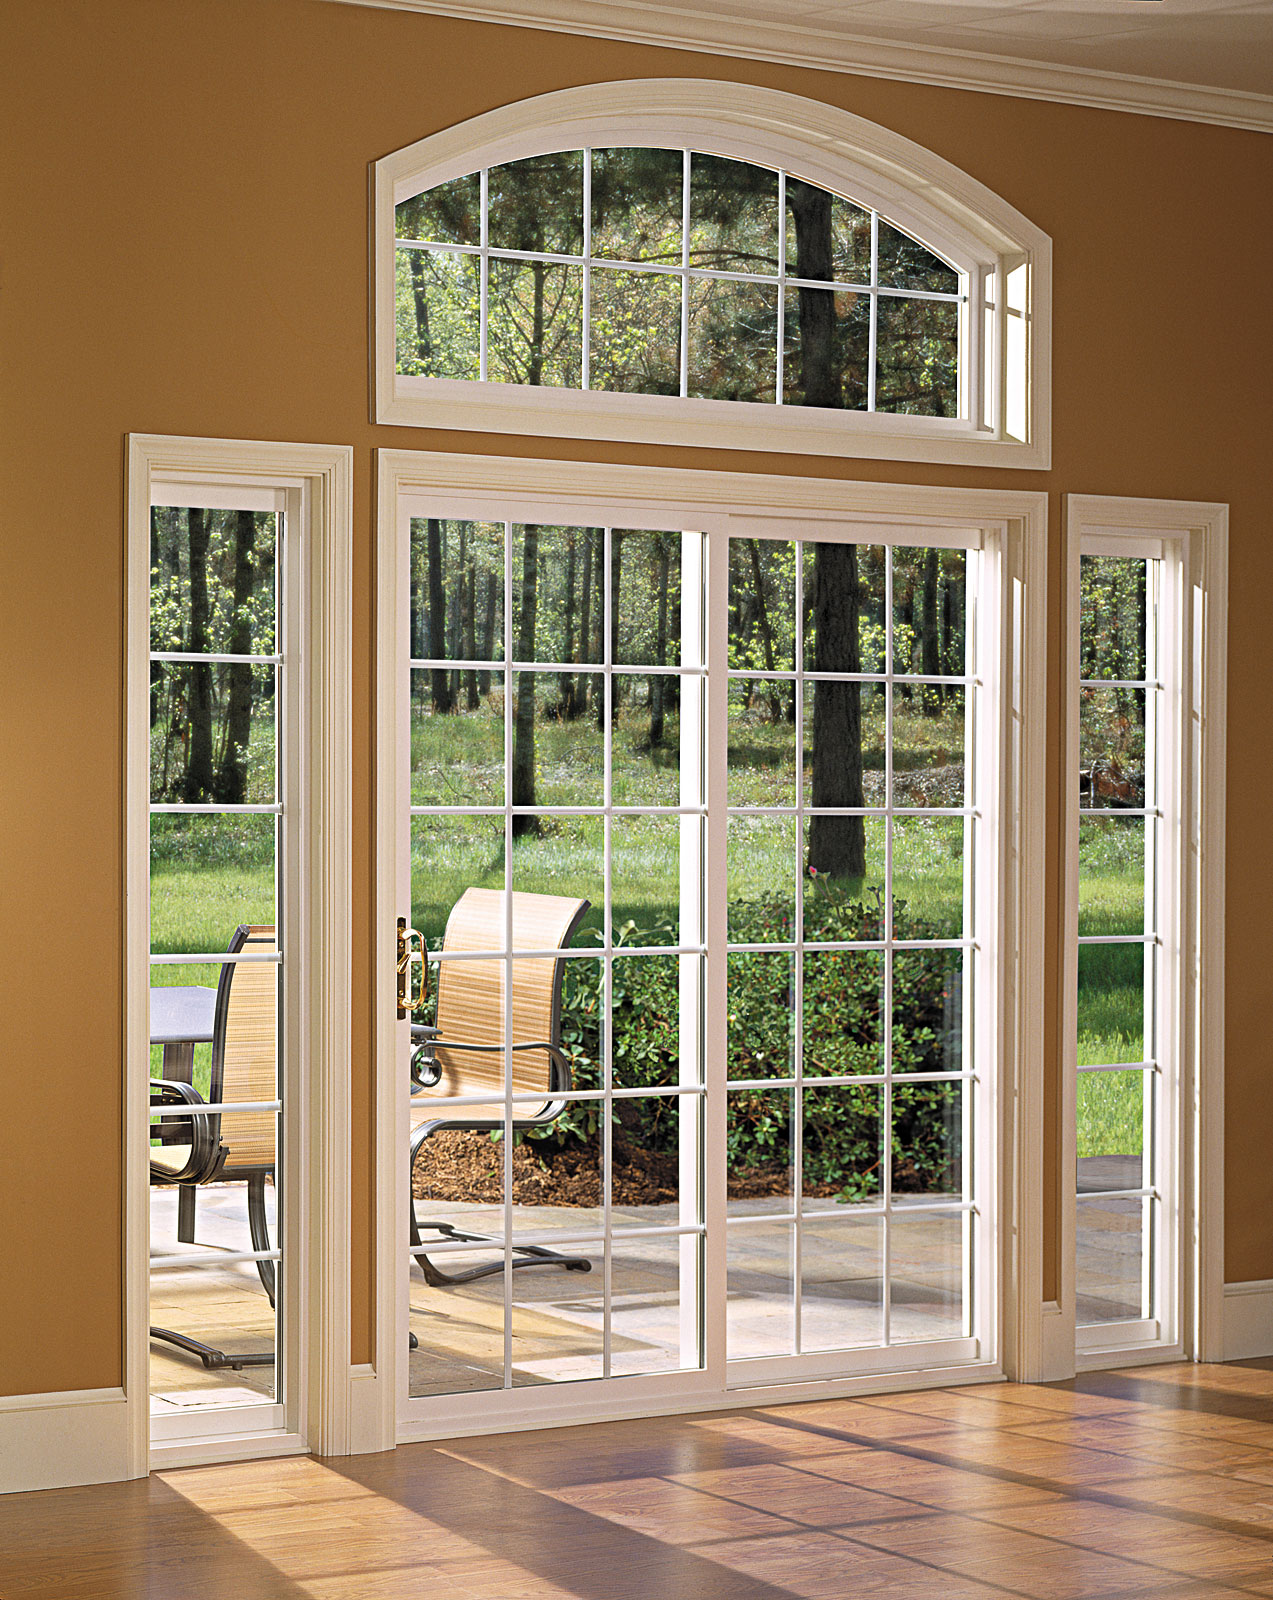 Breathe New Life into Your Home windows with Intriguing Window Therapy Concepts